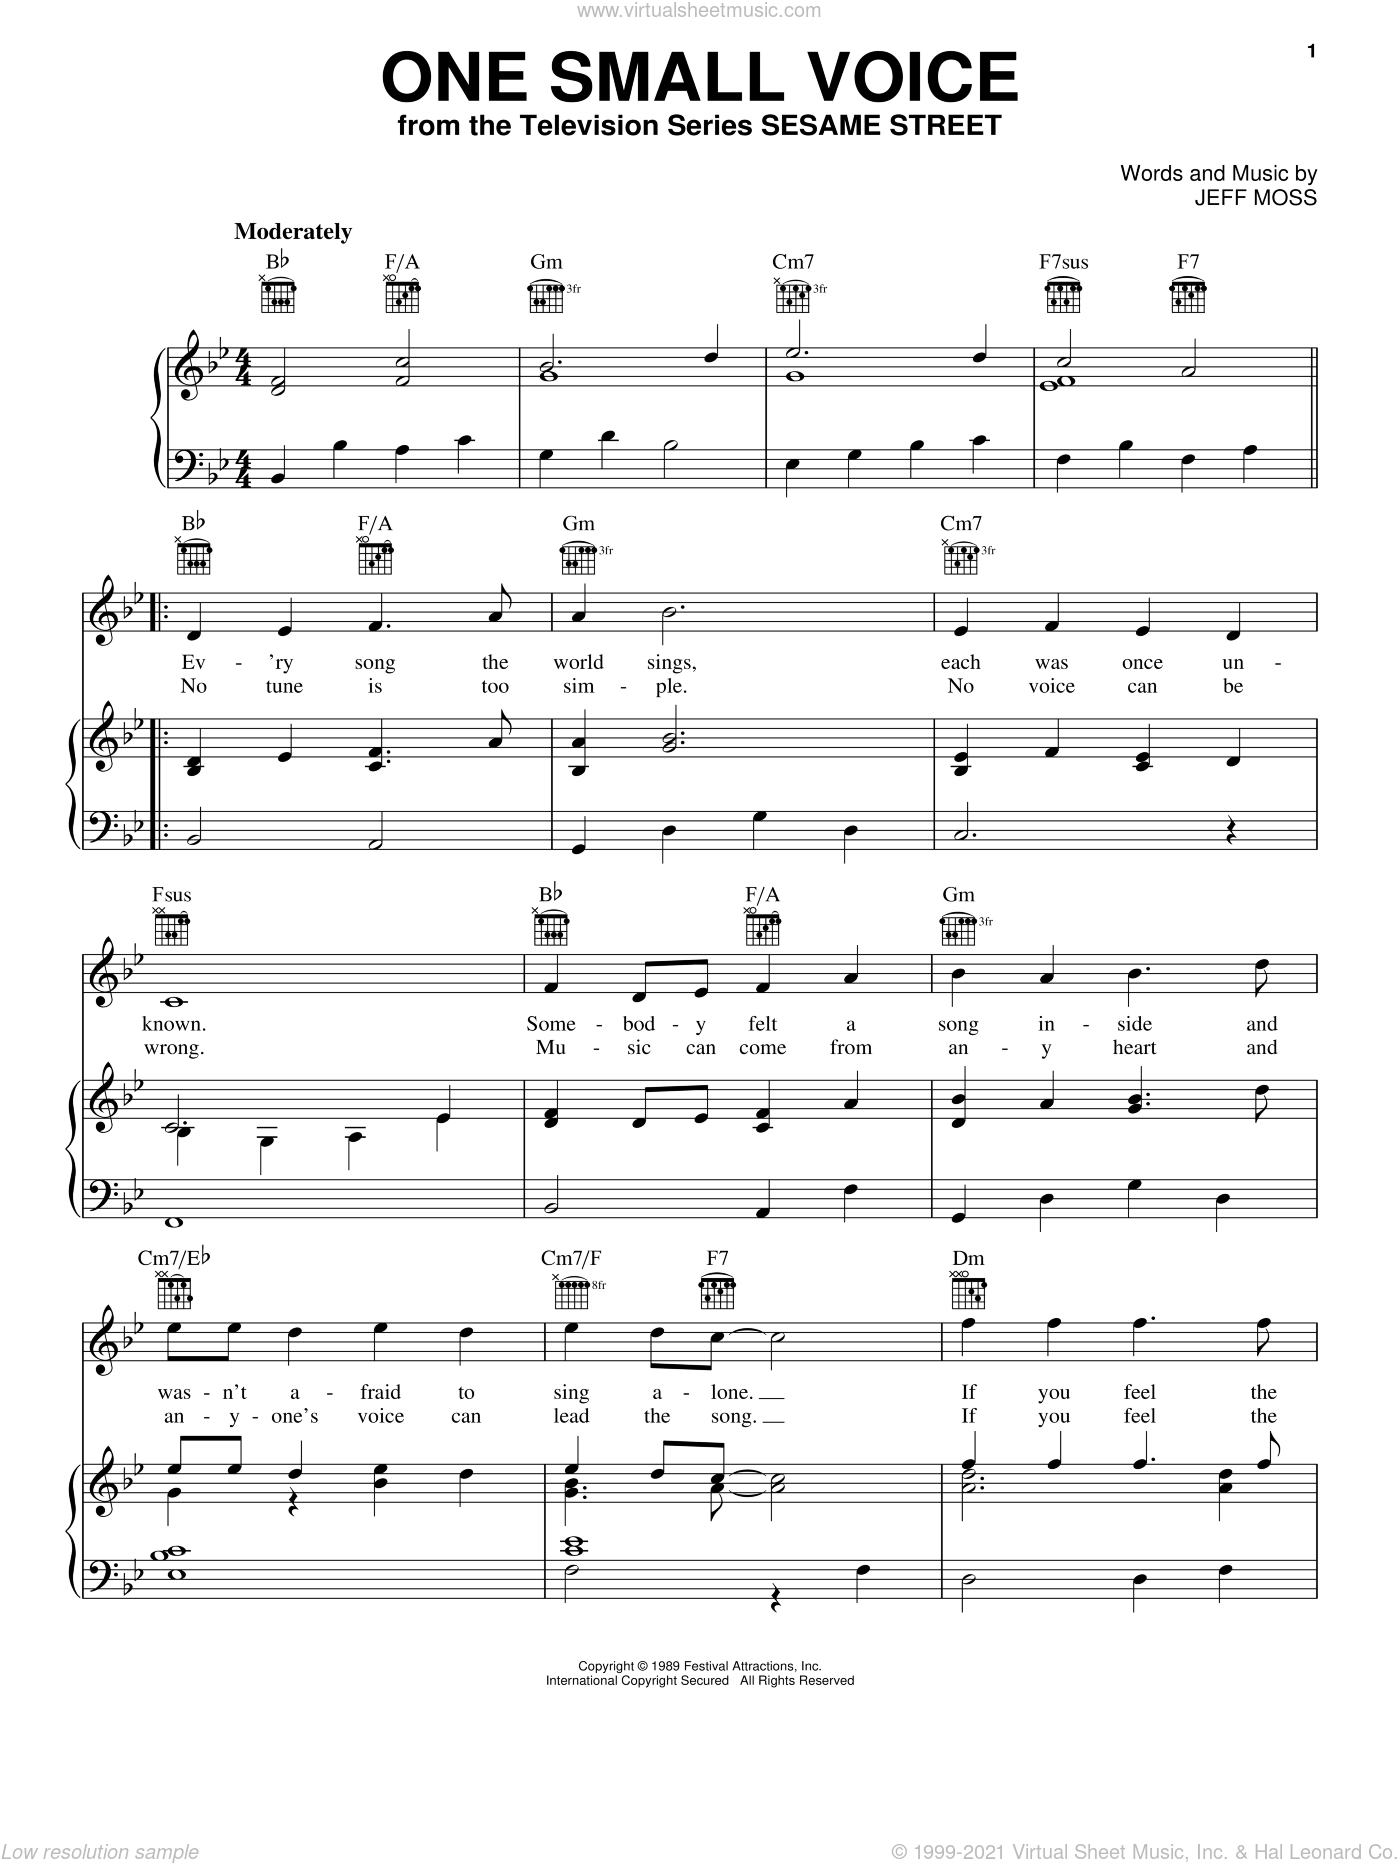 One Small Voice sheet music for voice, piano or guitar by Jeff Moss